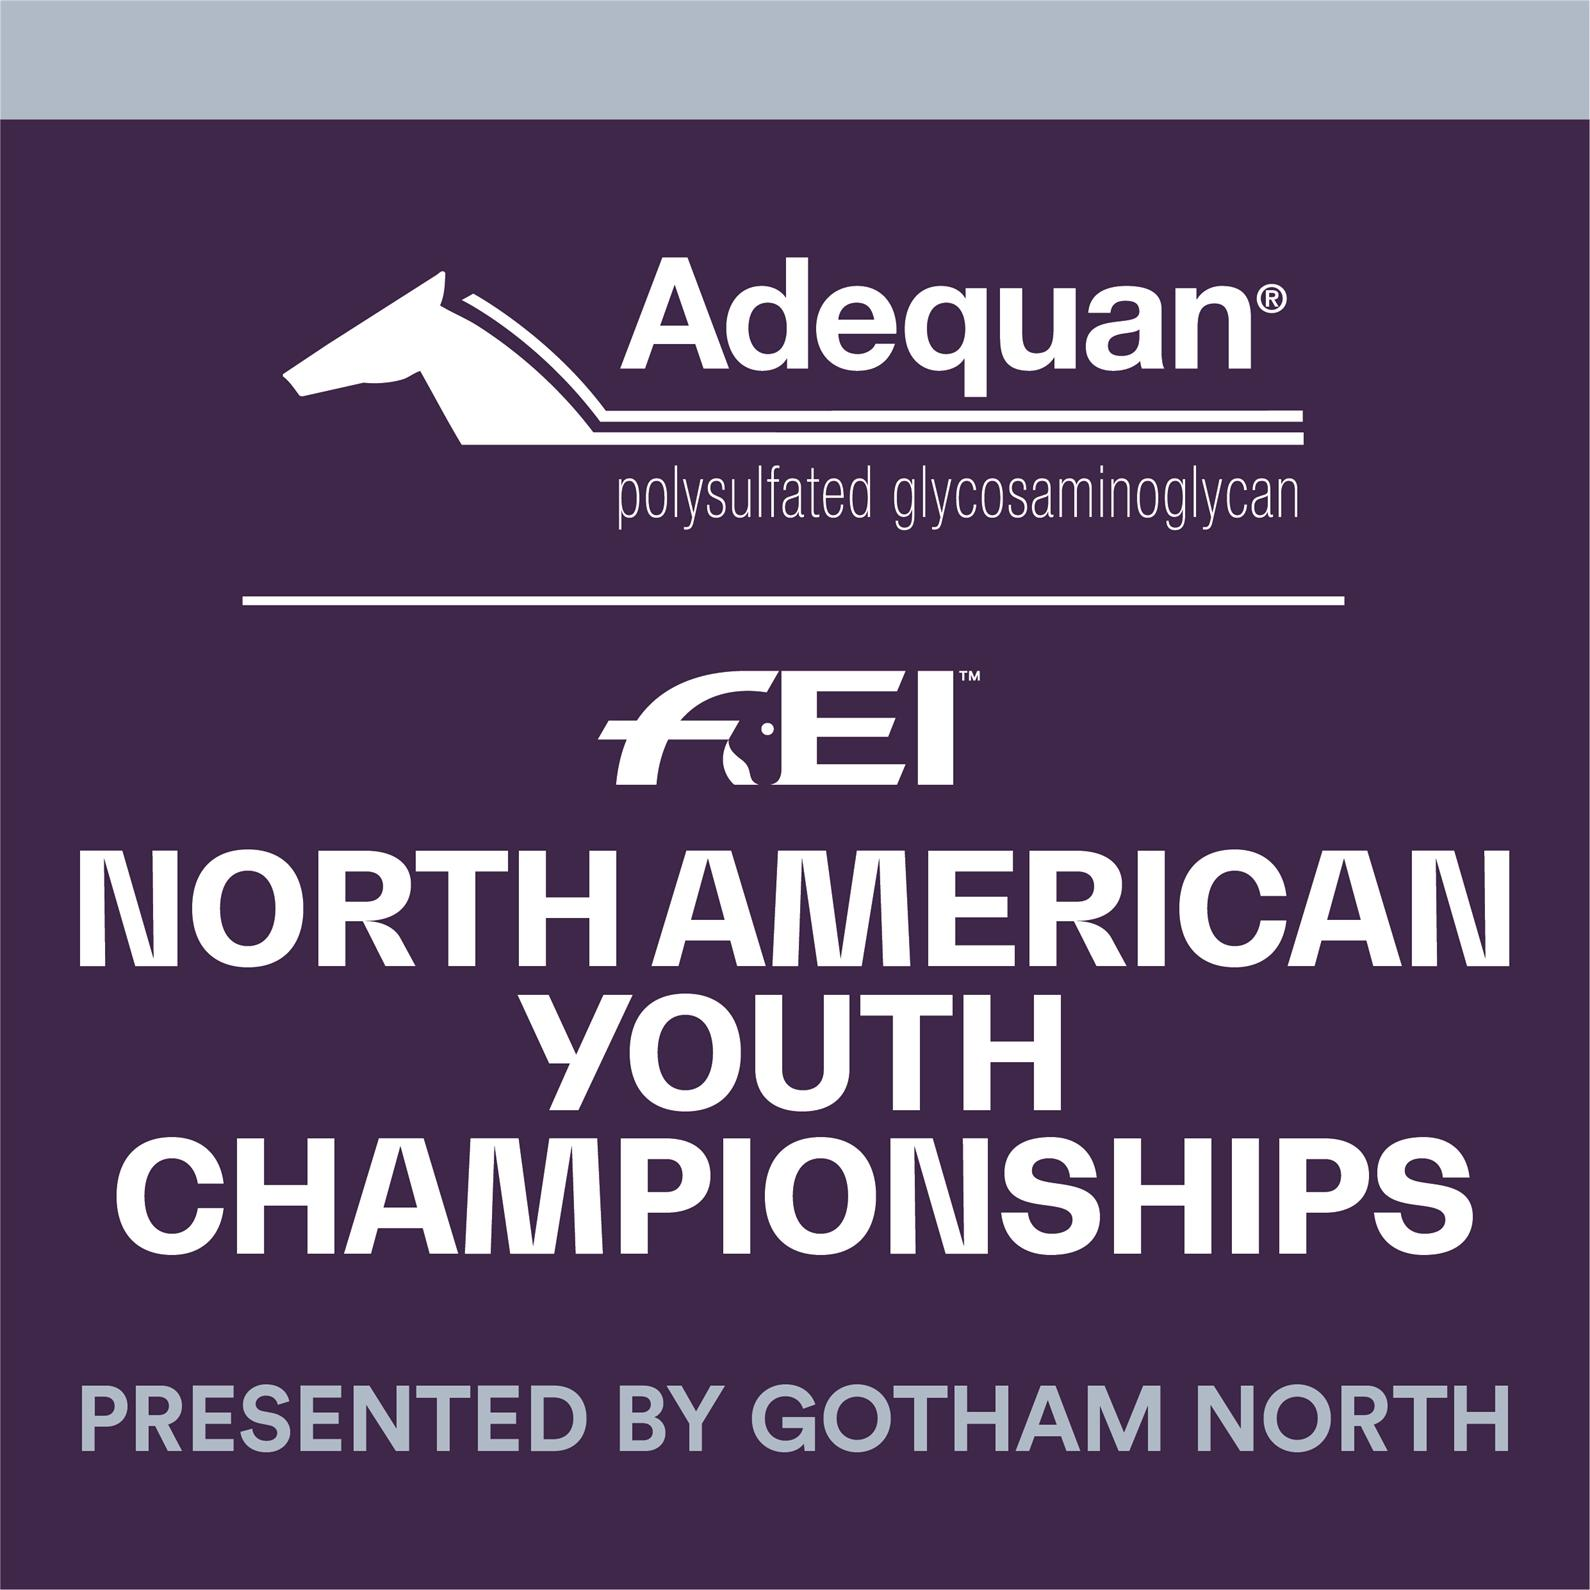 2019 Adequan/FEI North American Youth Championships